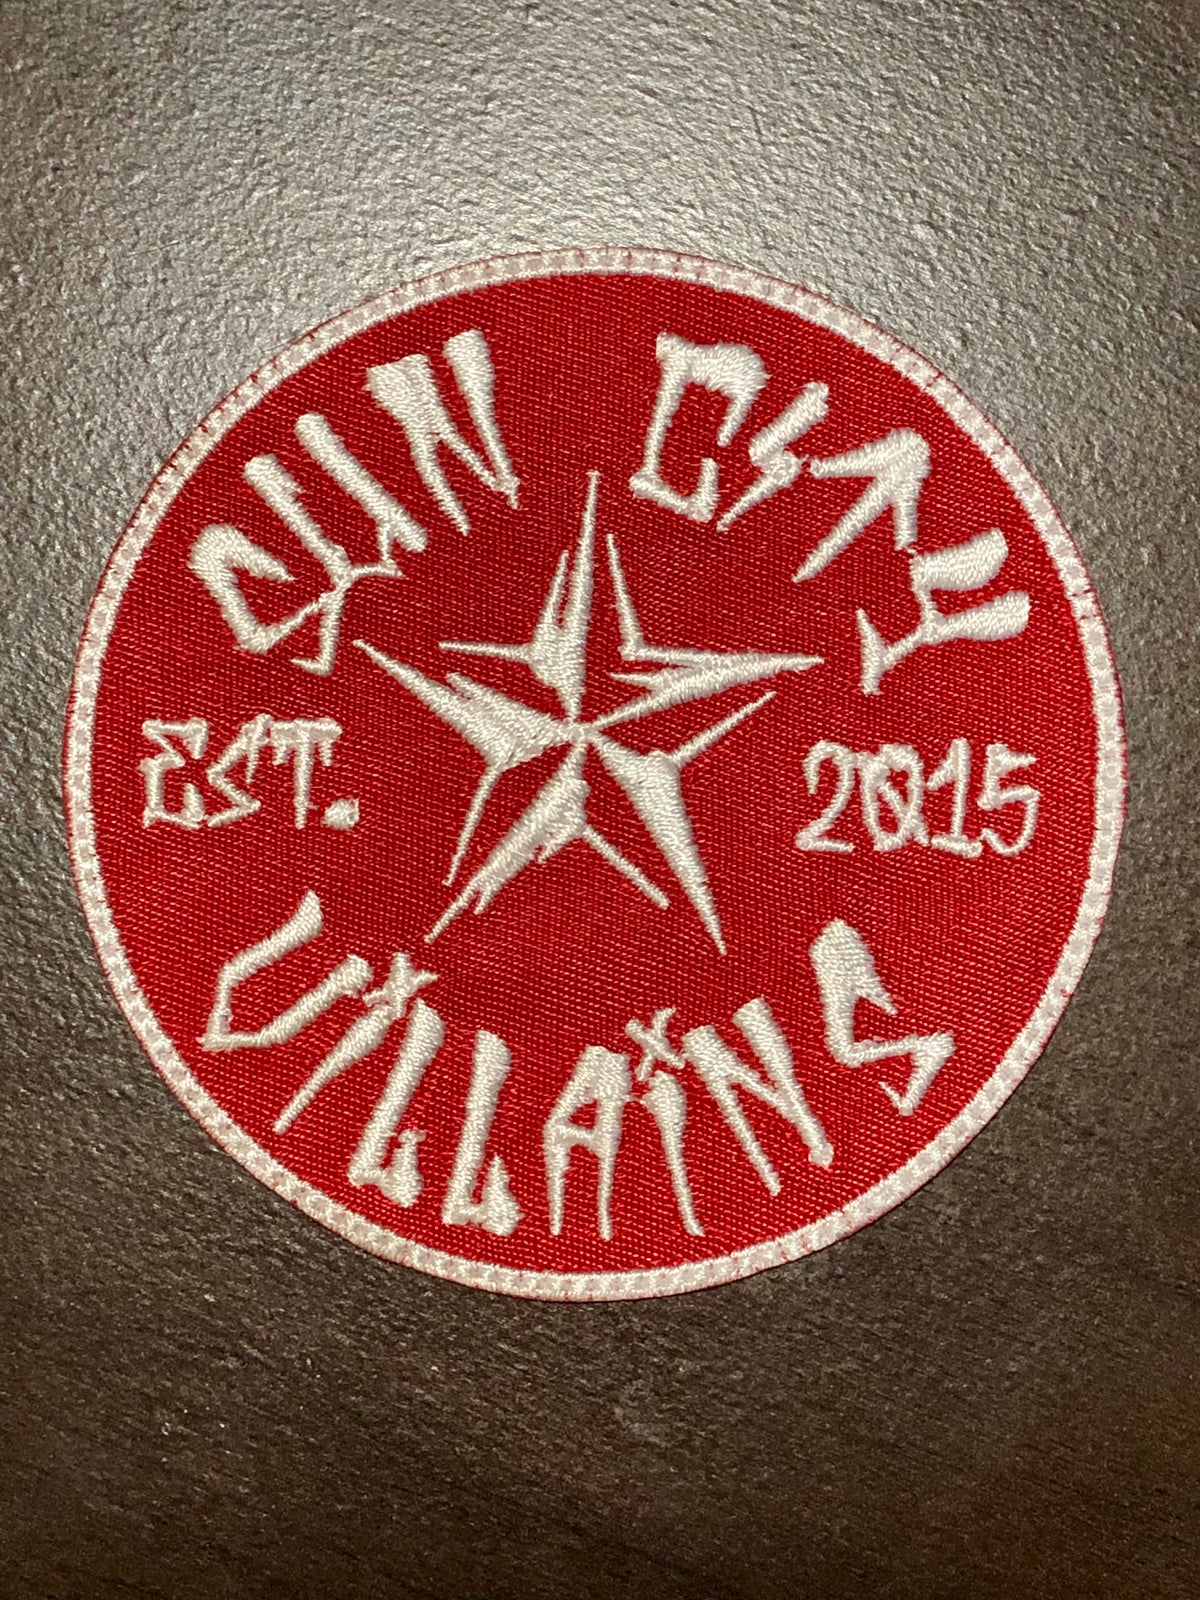 Image of West Texas Chapter Patches